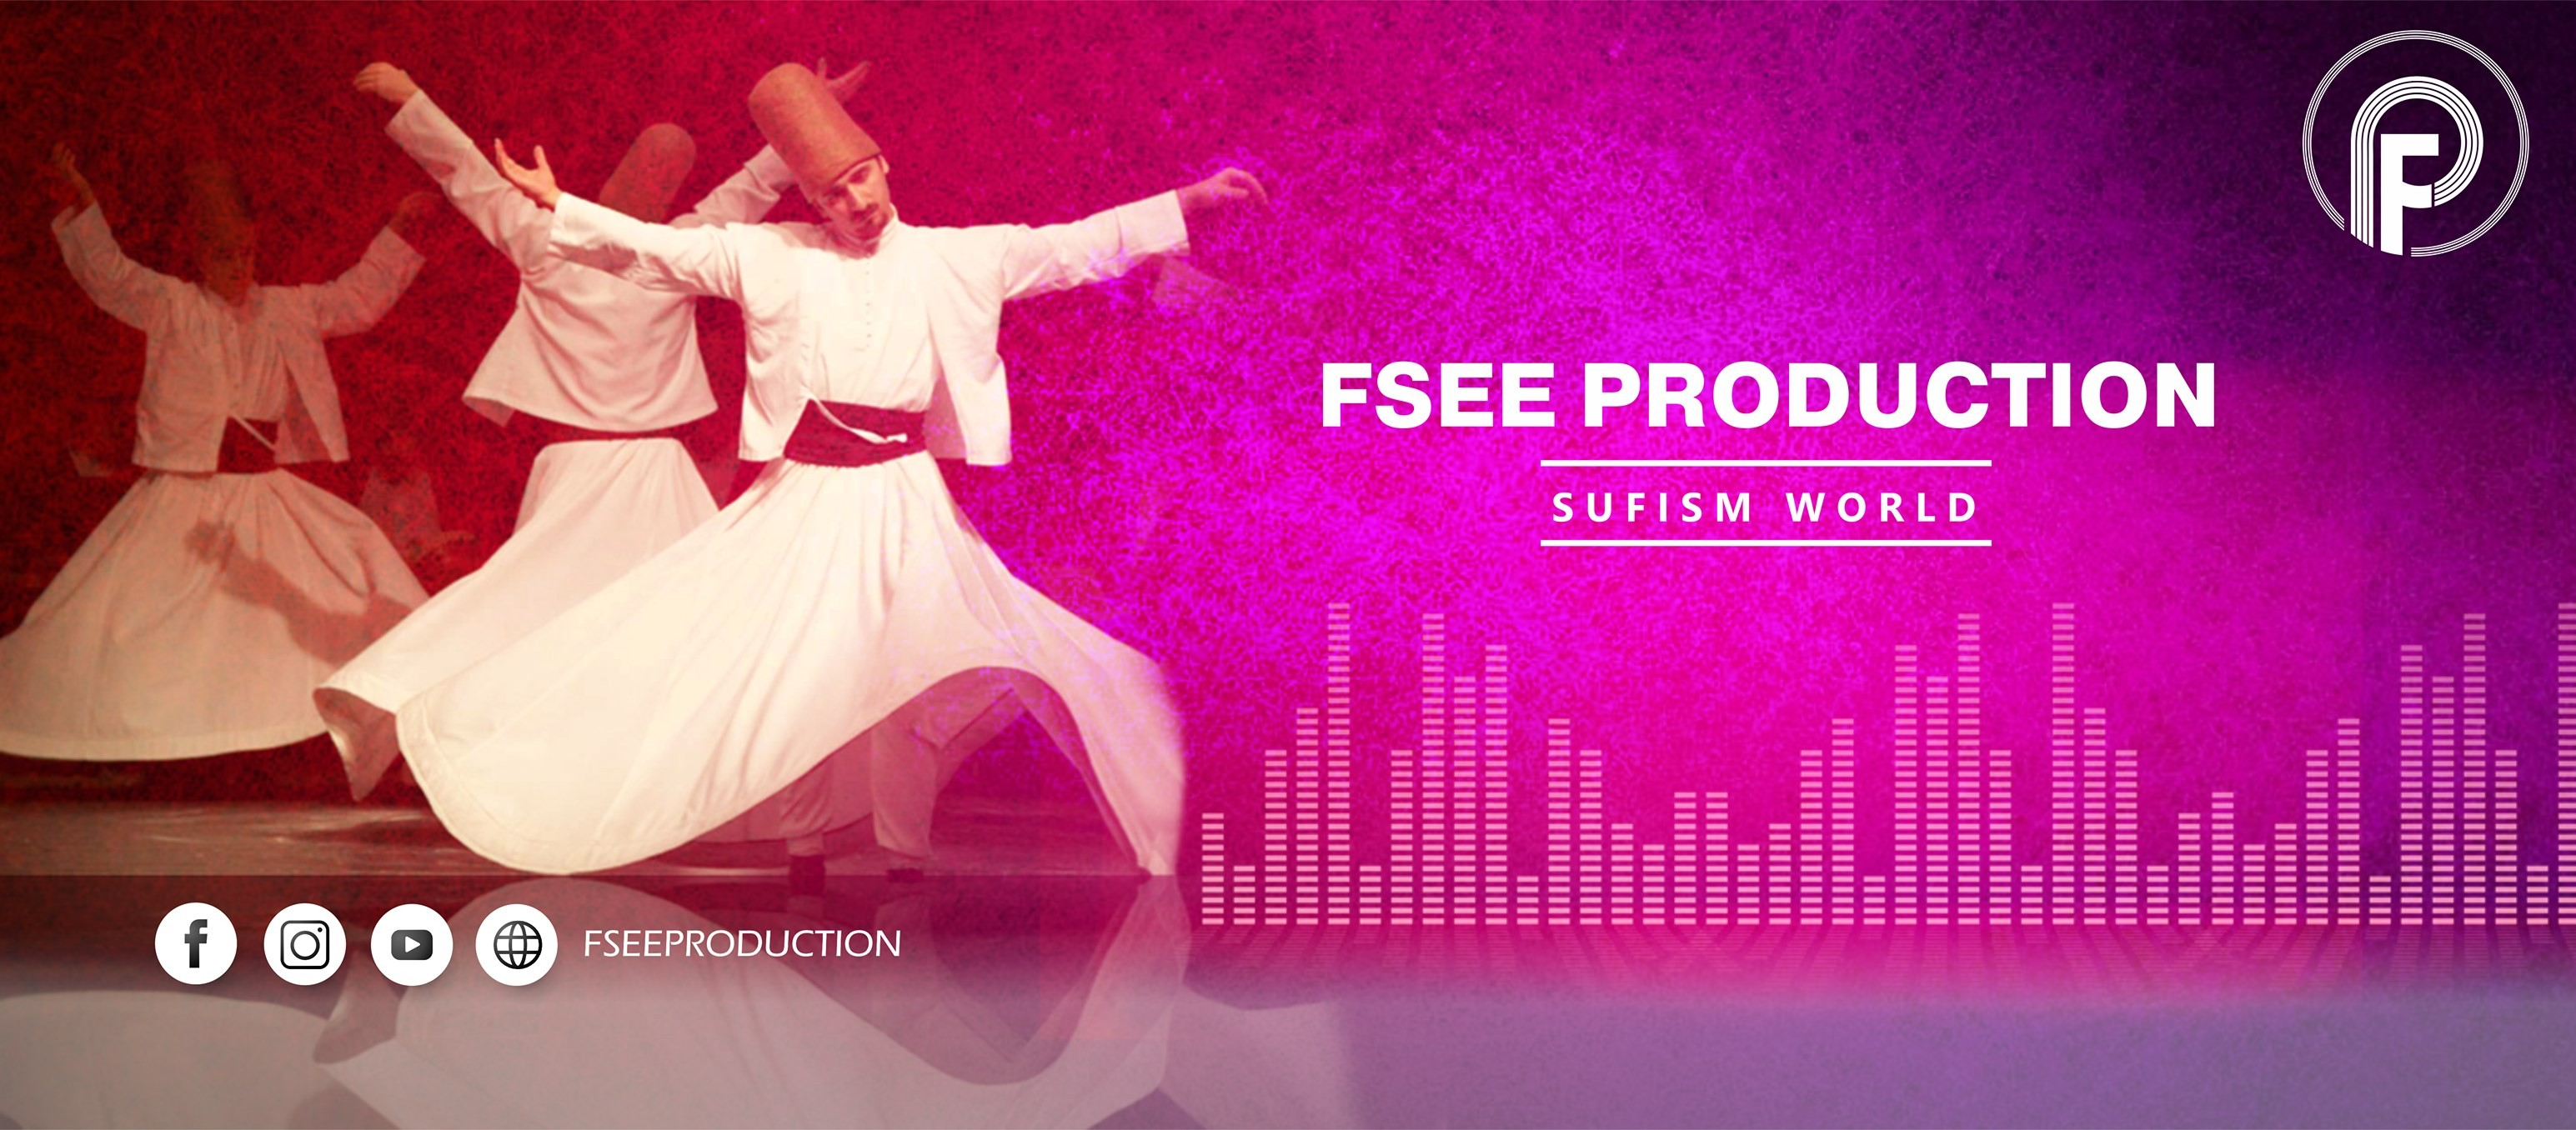 What is Sufism? Is Sufism a part of Islam?